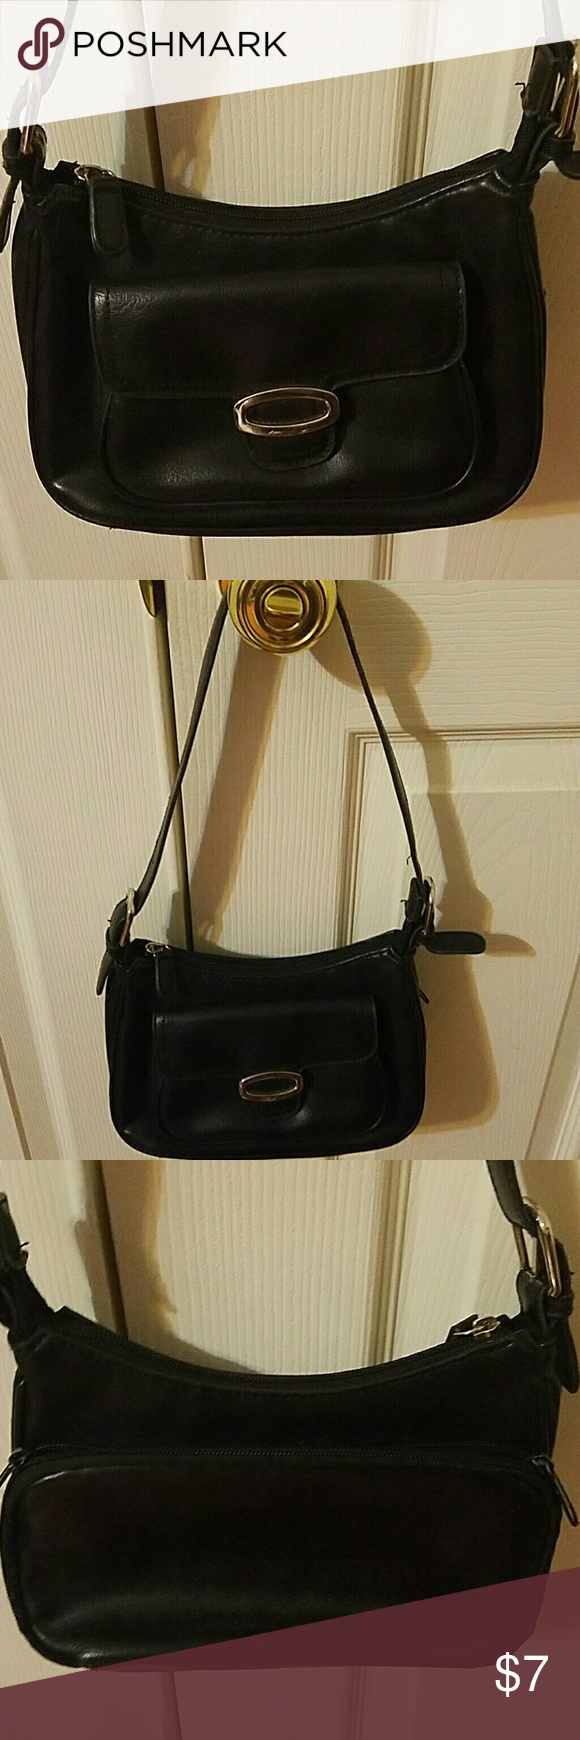 "Vintage Fashion Purse Cute vintage fashion leather purse. Gently used. No rips or tears. Top zip closure. One zip pocket inside. One flap pocket with magnetic clasp closure in front. One zip pocket in the back. Approx 10"" handle drop. Black color with silver hardware. Bags"